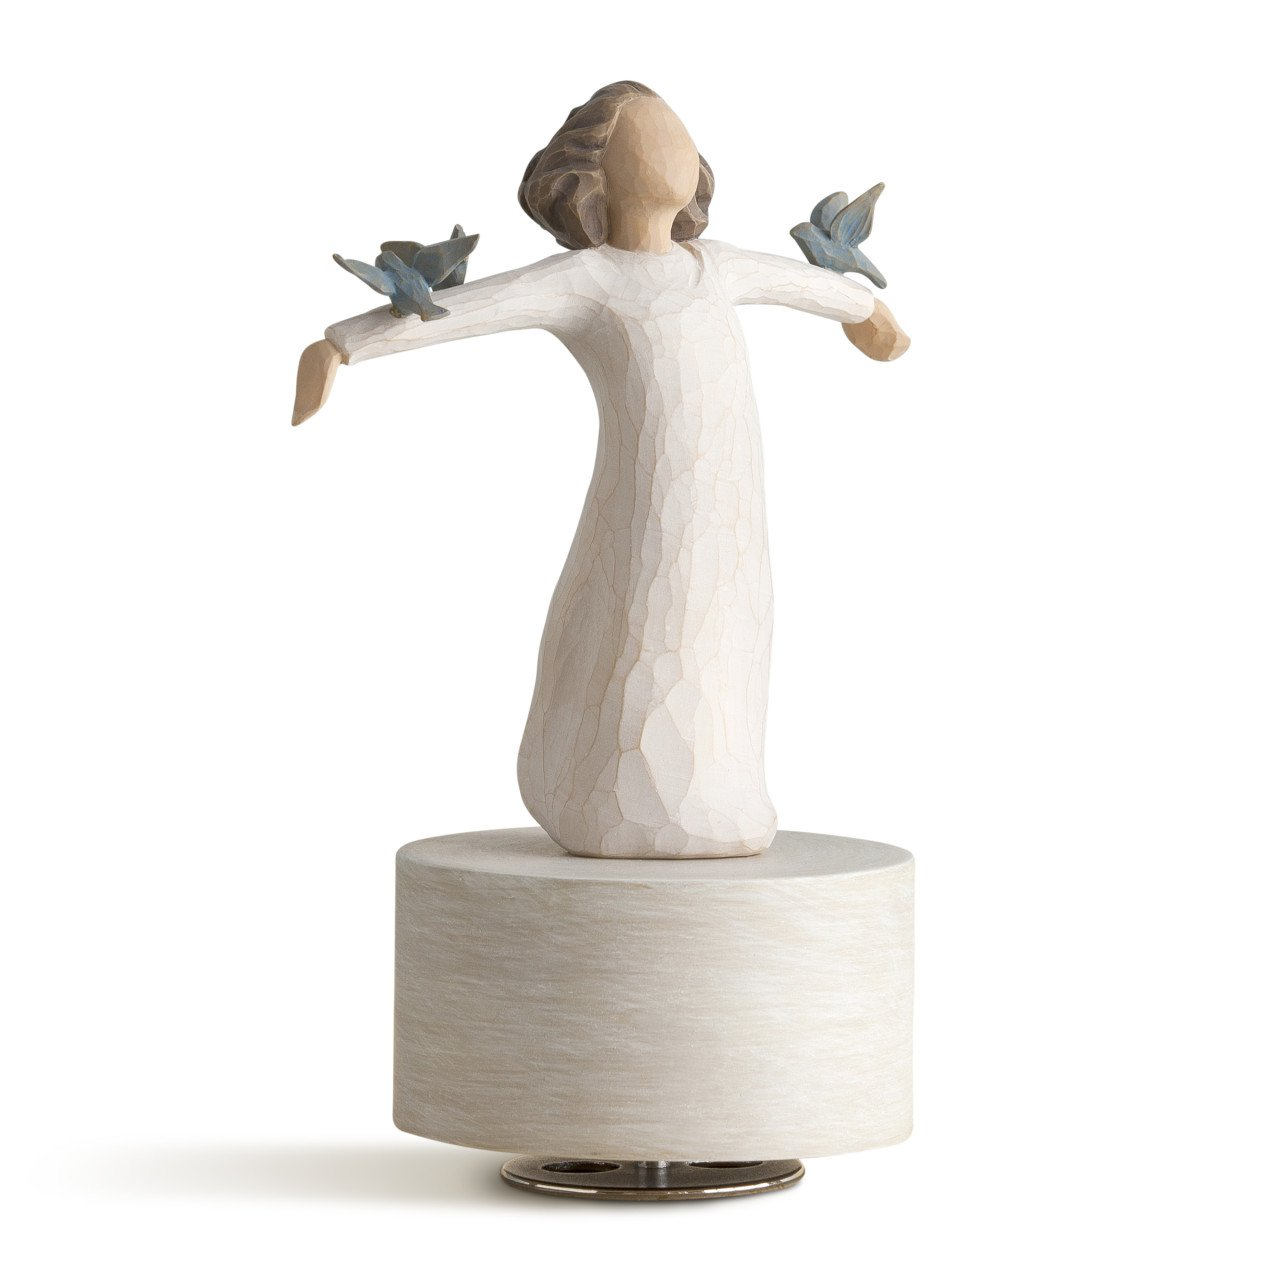 Willow Tree Happiness Musical, sculpted hand-painted musical figure by Willow Tree